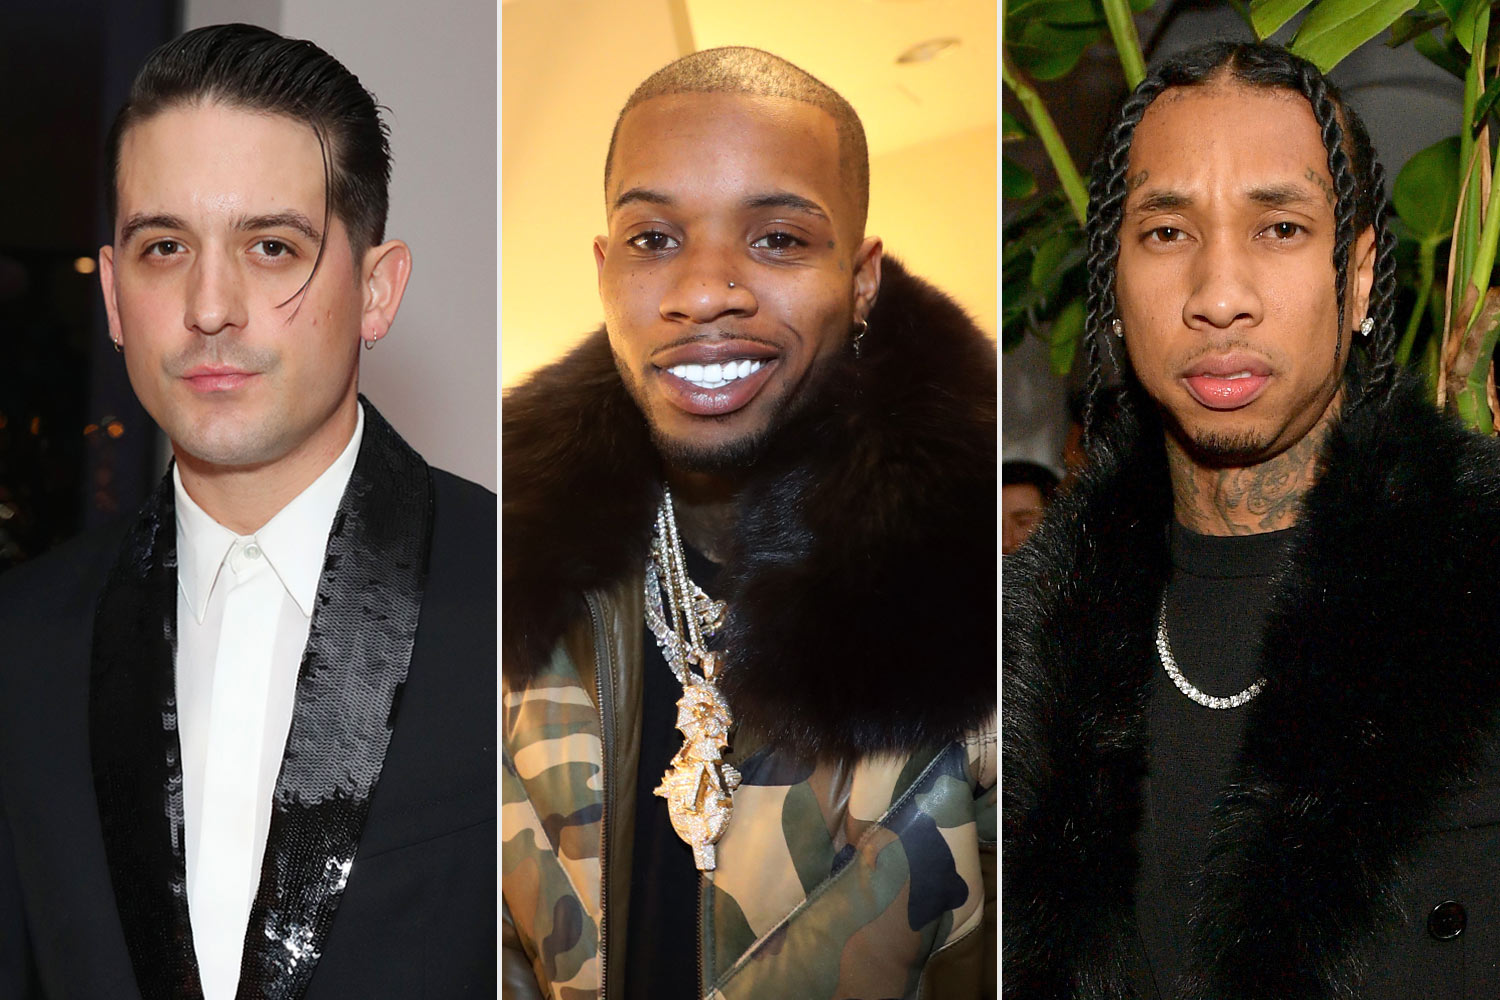 G-Eazy Hints at Fling with Megan Thee Stallion on New Collab with Tory Lanez & Tyga